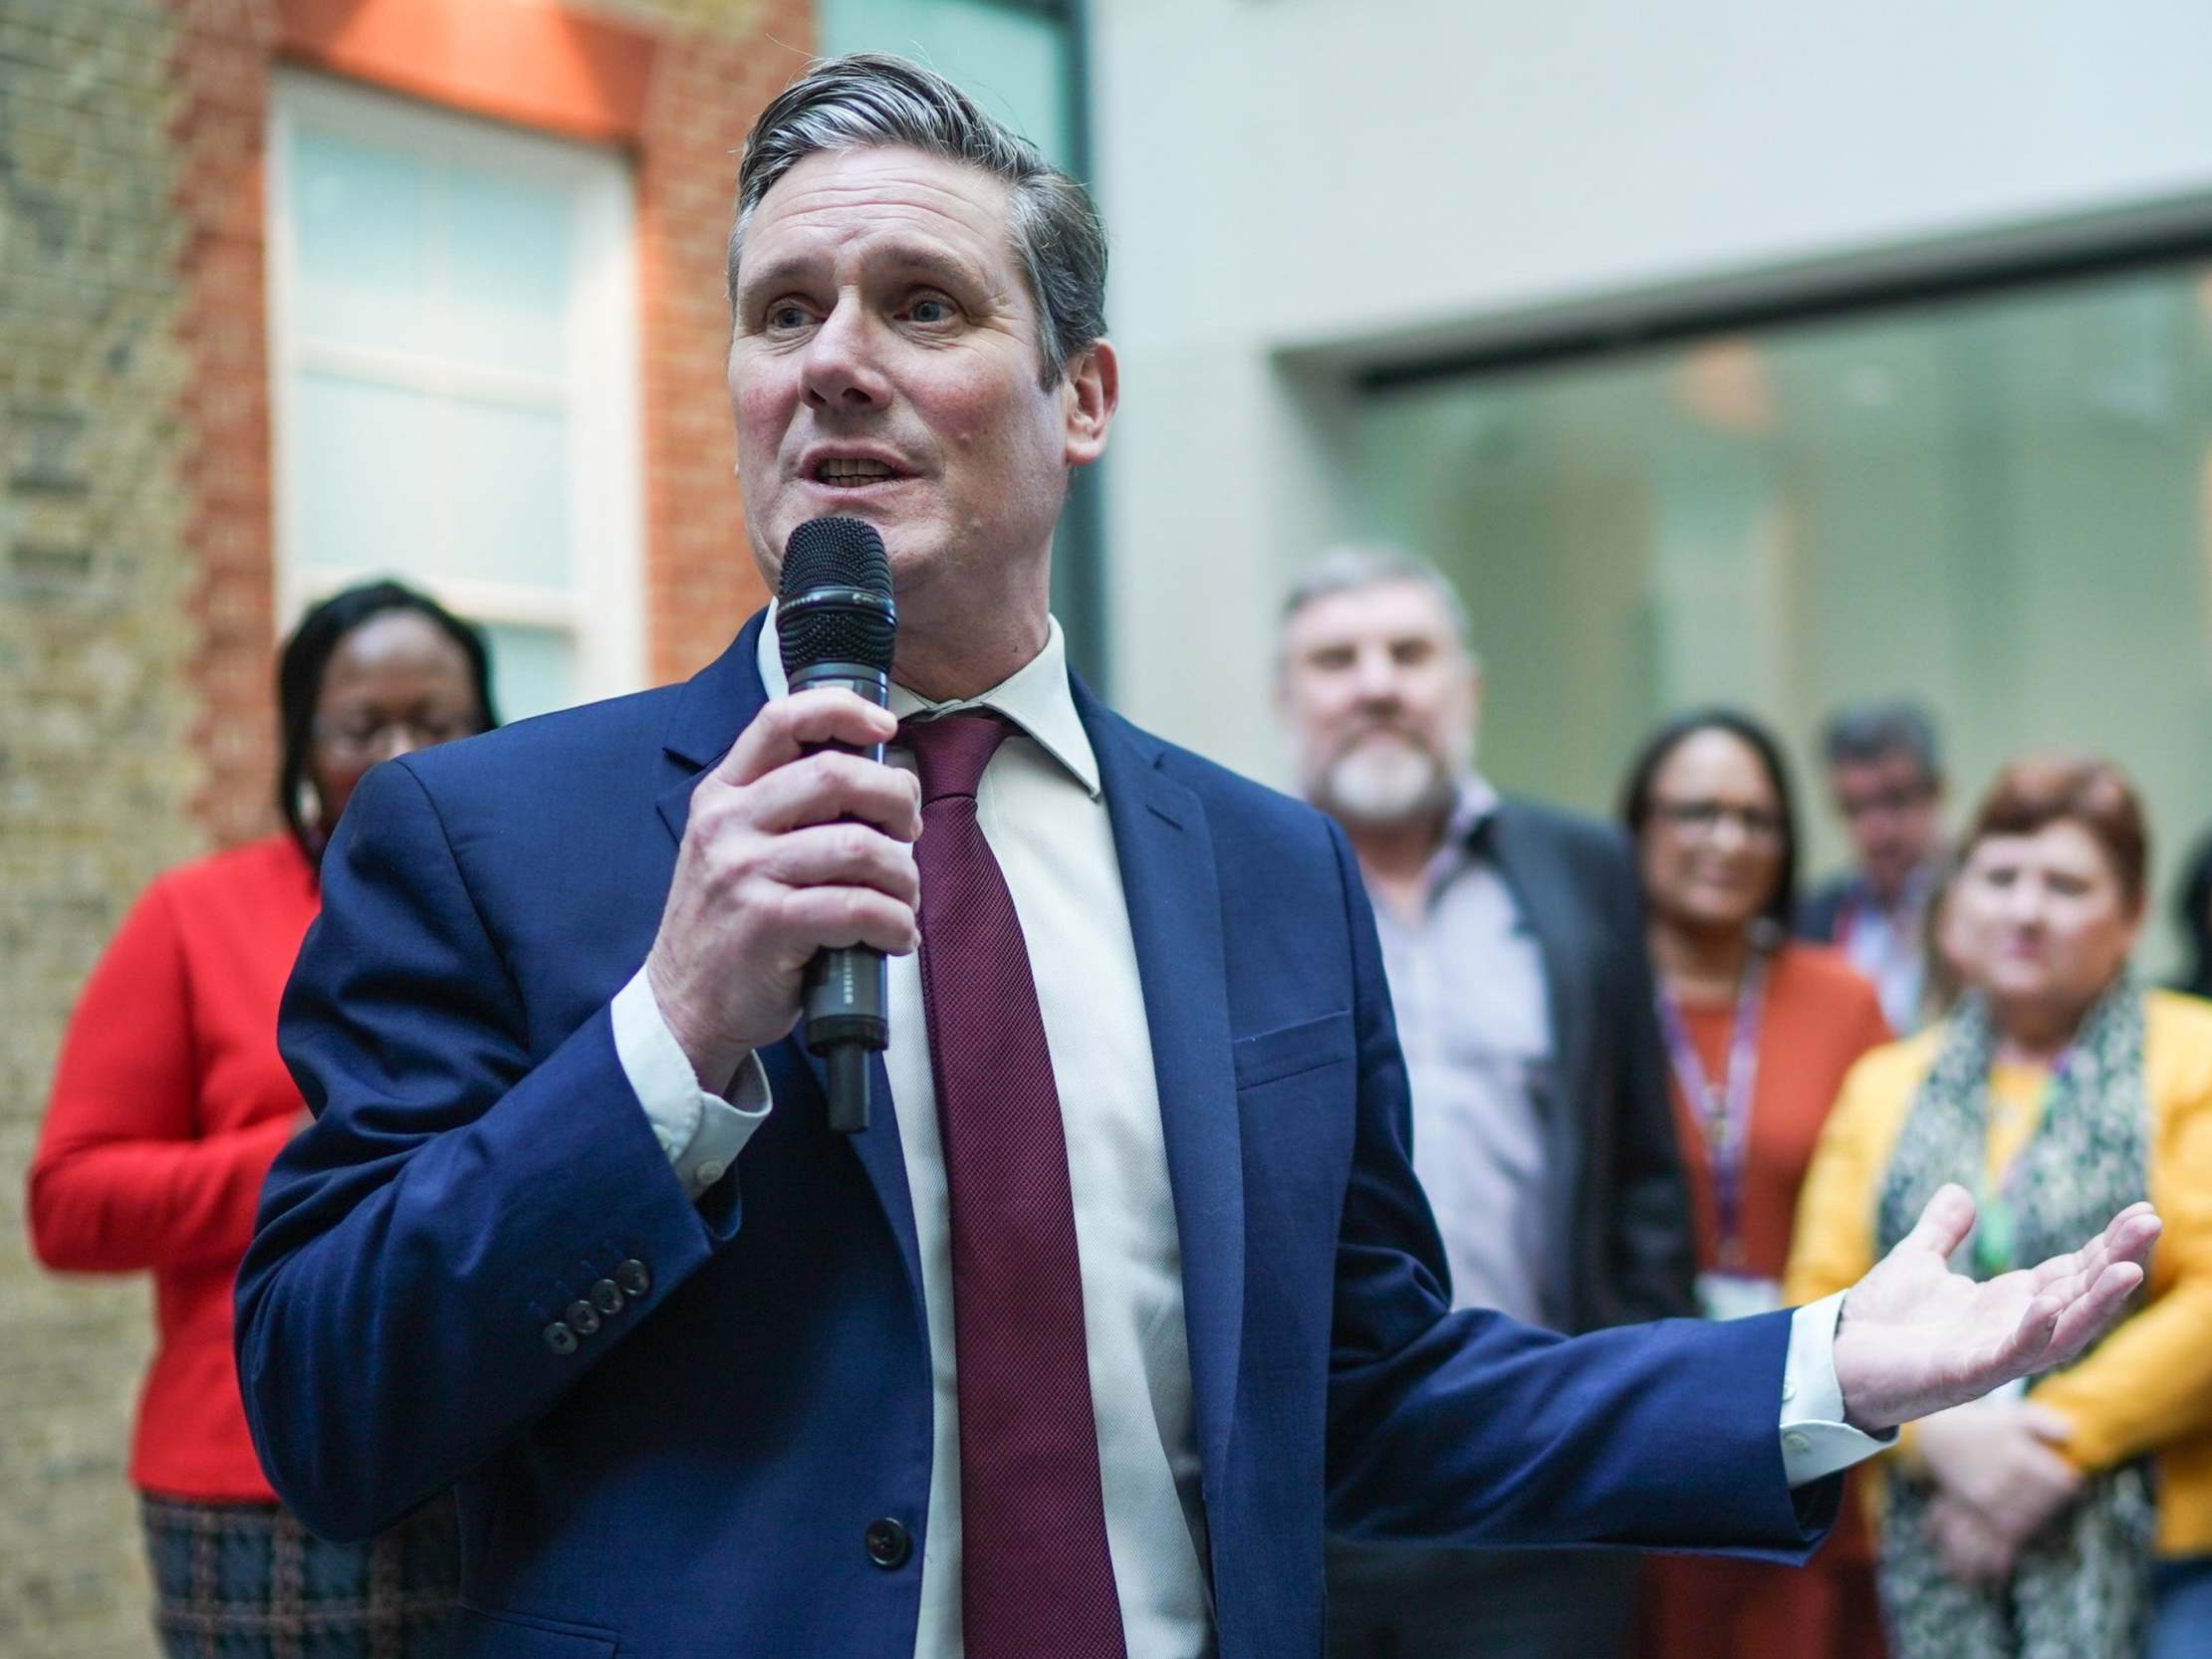 Keir Starmer to call for greater devolution within 'federal UK' on return to Labour leadership campaign trail